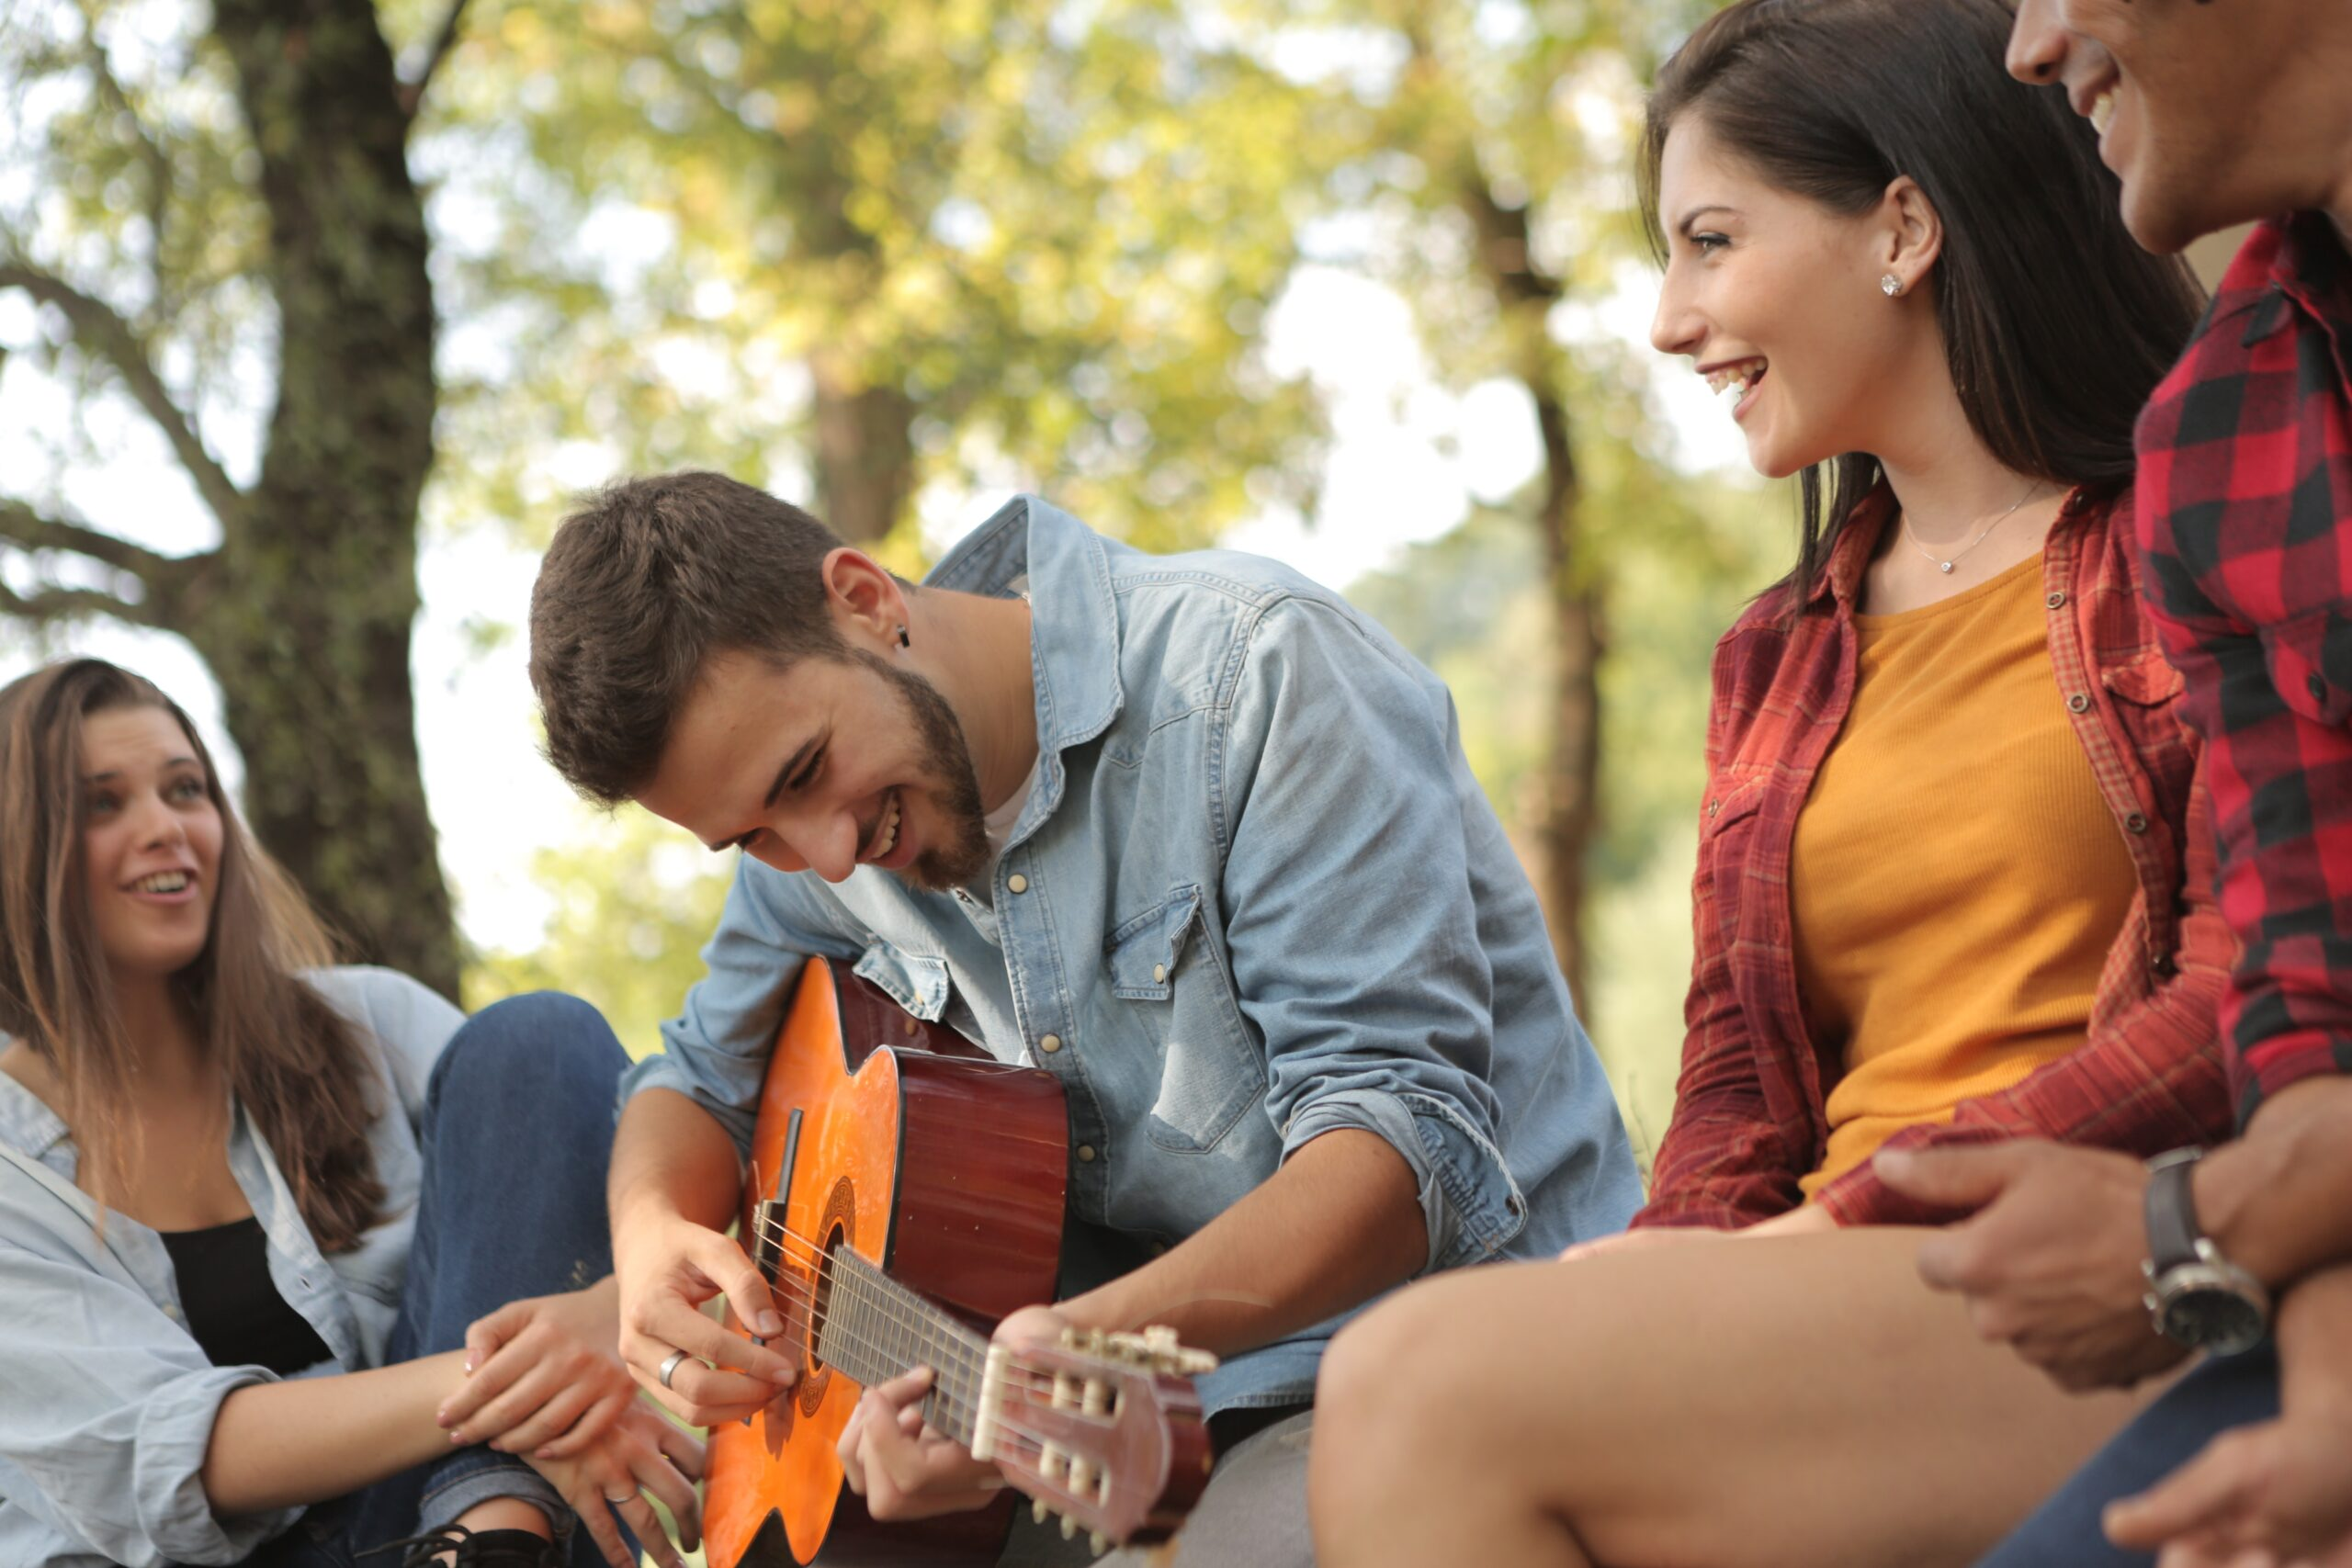 Friends Spending Time Together With A Guitar | The Top 9 Ways To Practice Acoustic Guitar Techniques